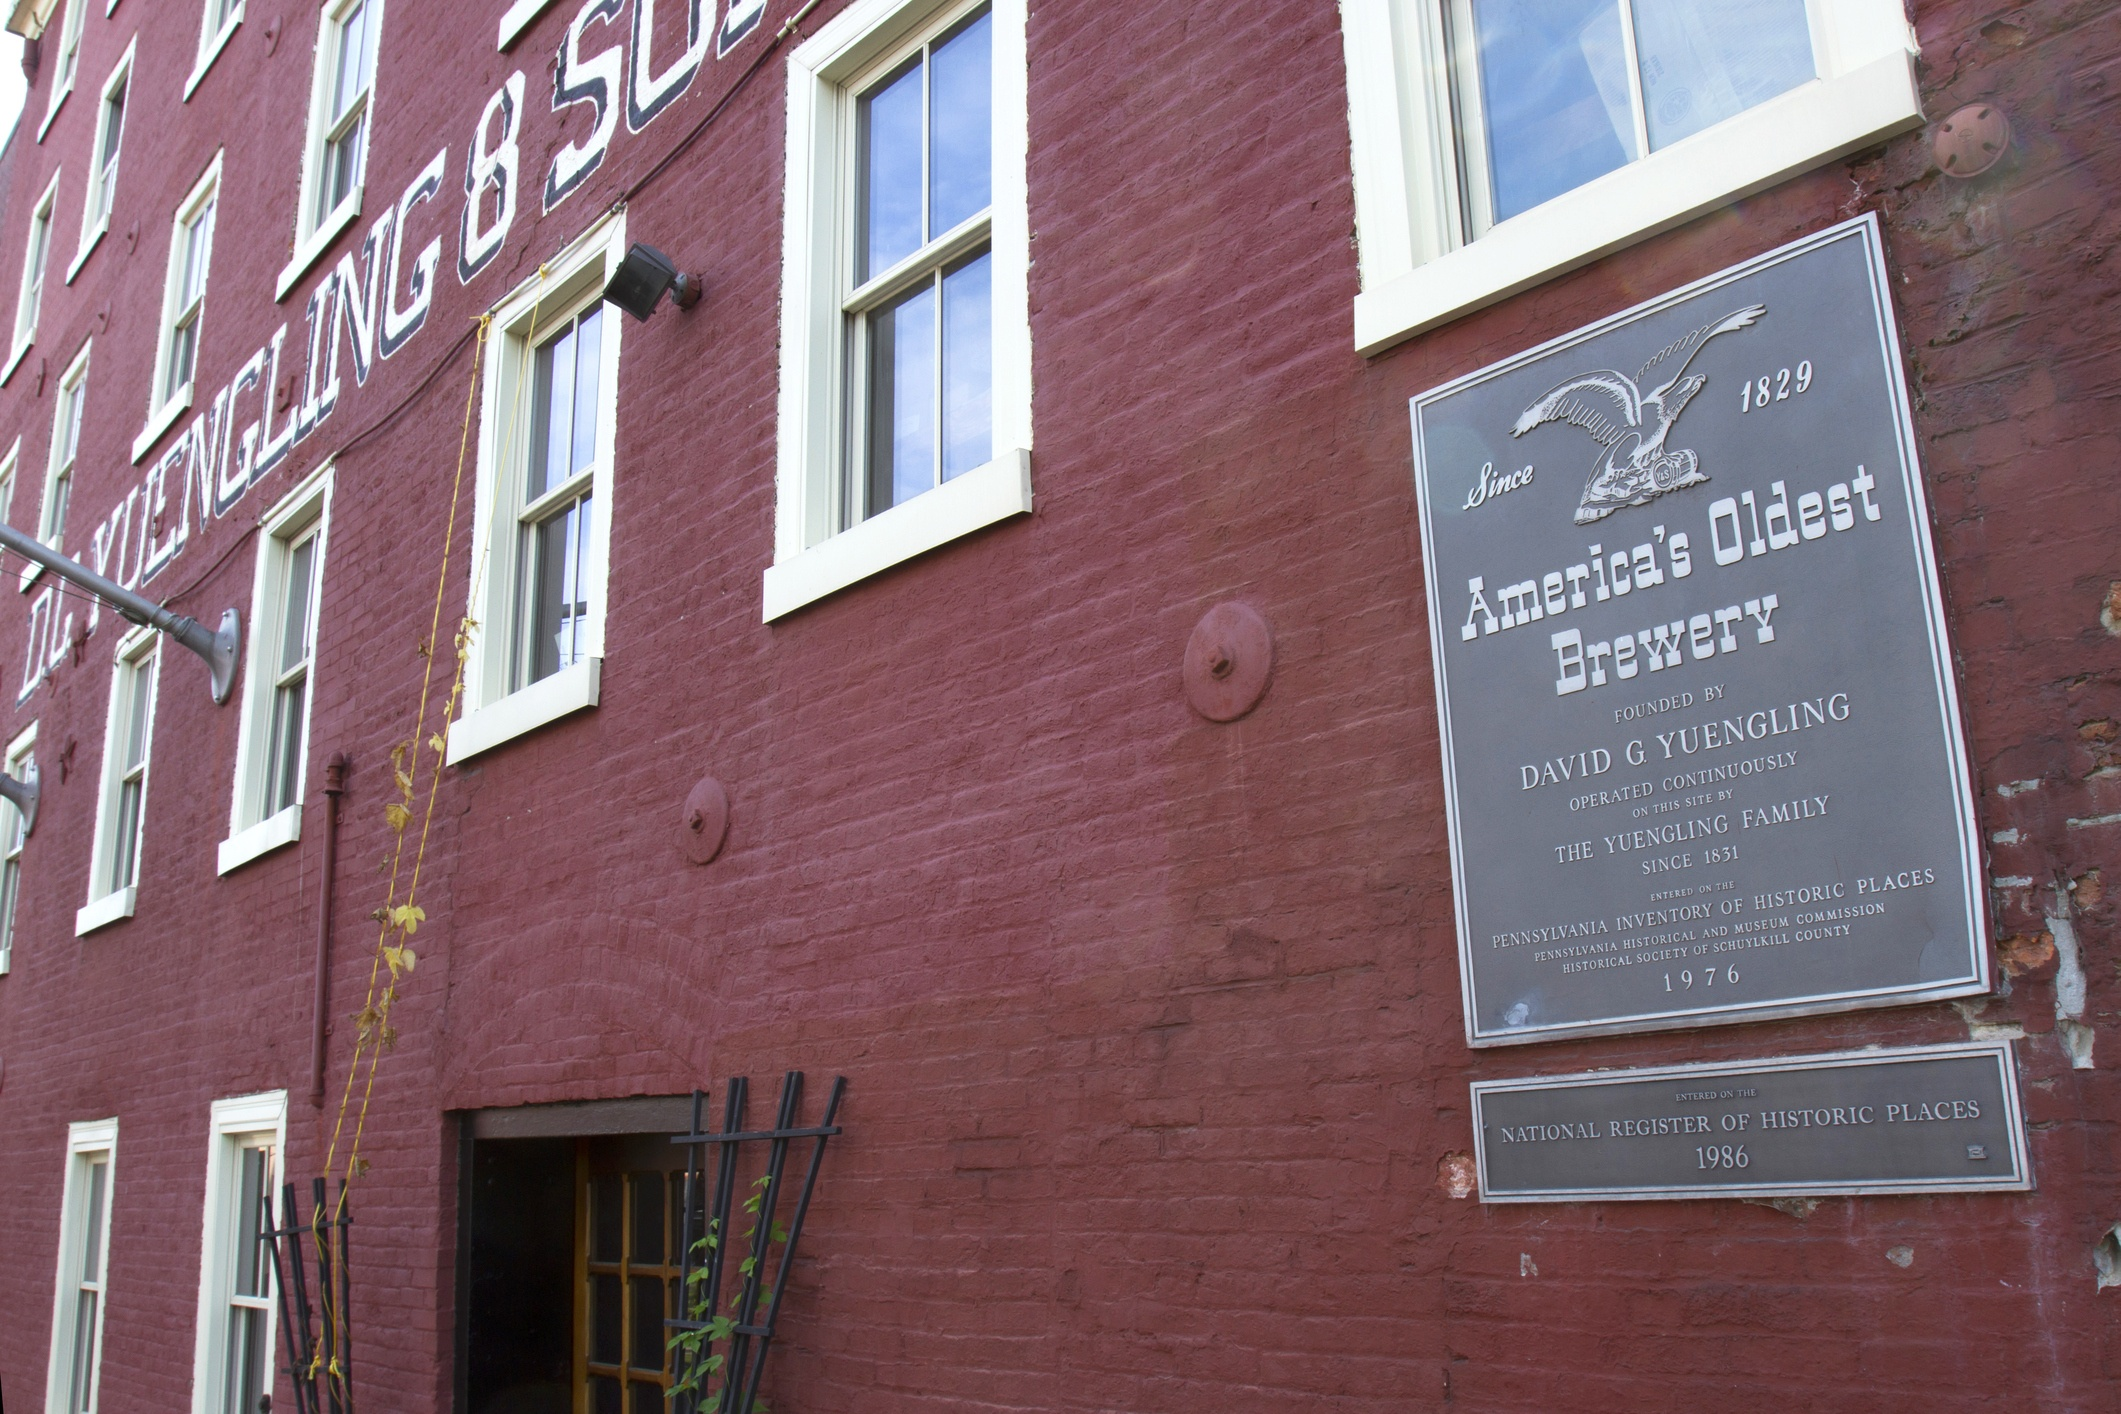 Yeungling America's Oldest Brewery